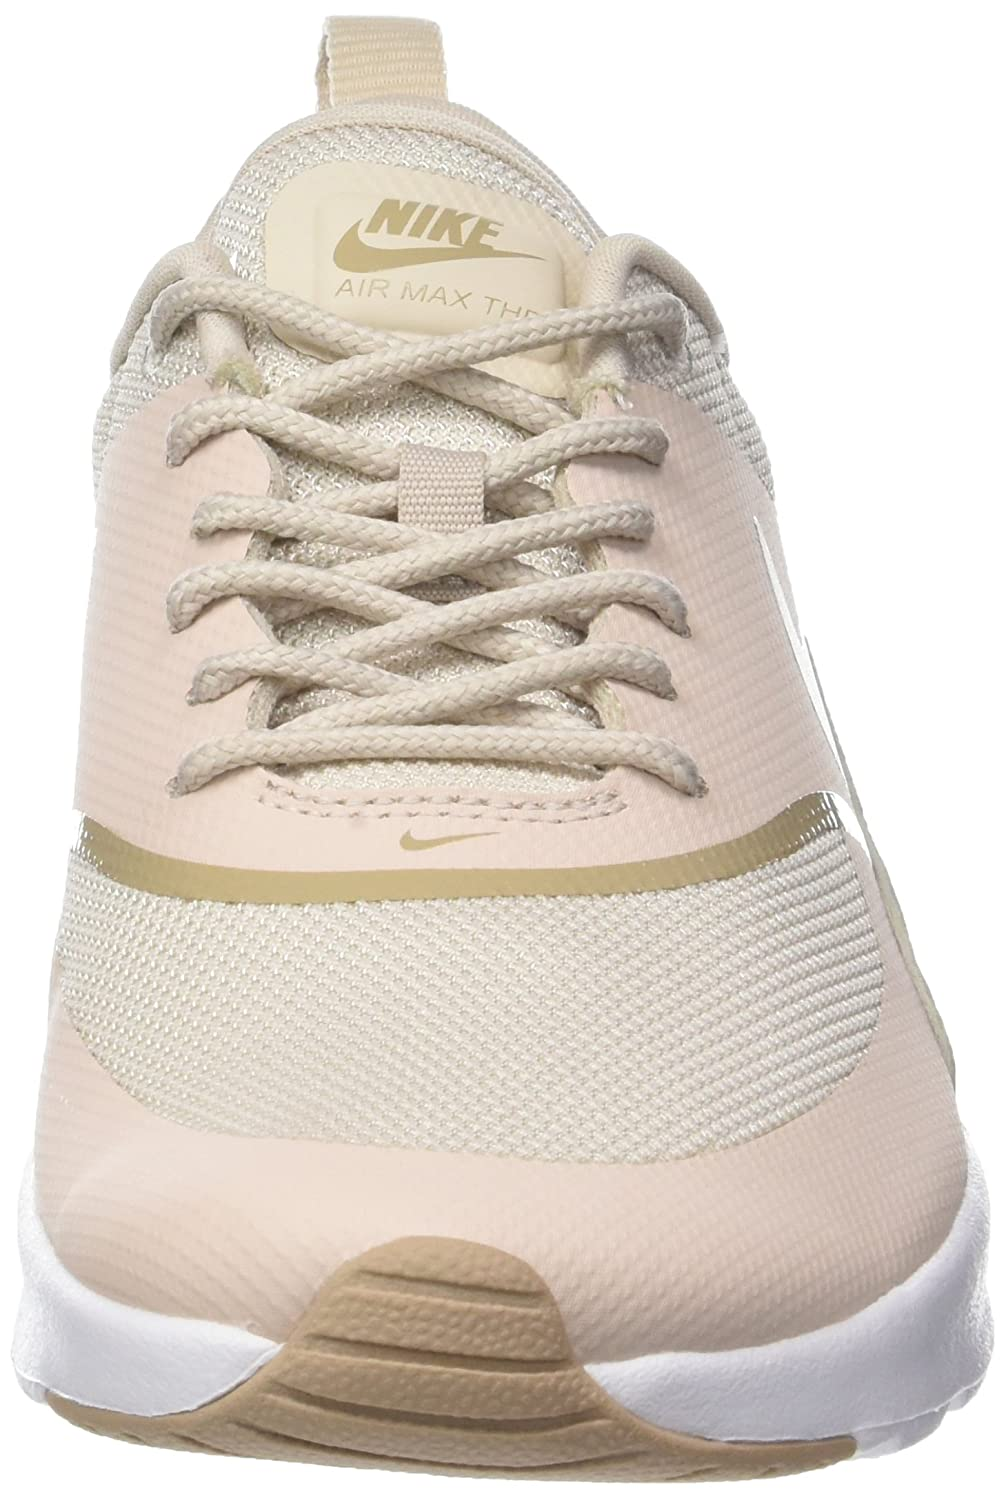 cheaper a8c68 7059f Nike Women's Air Max Thea Low-Top Trainer: Amazon.co.uk: Shoes & Bags